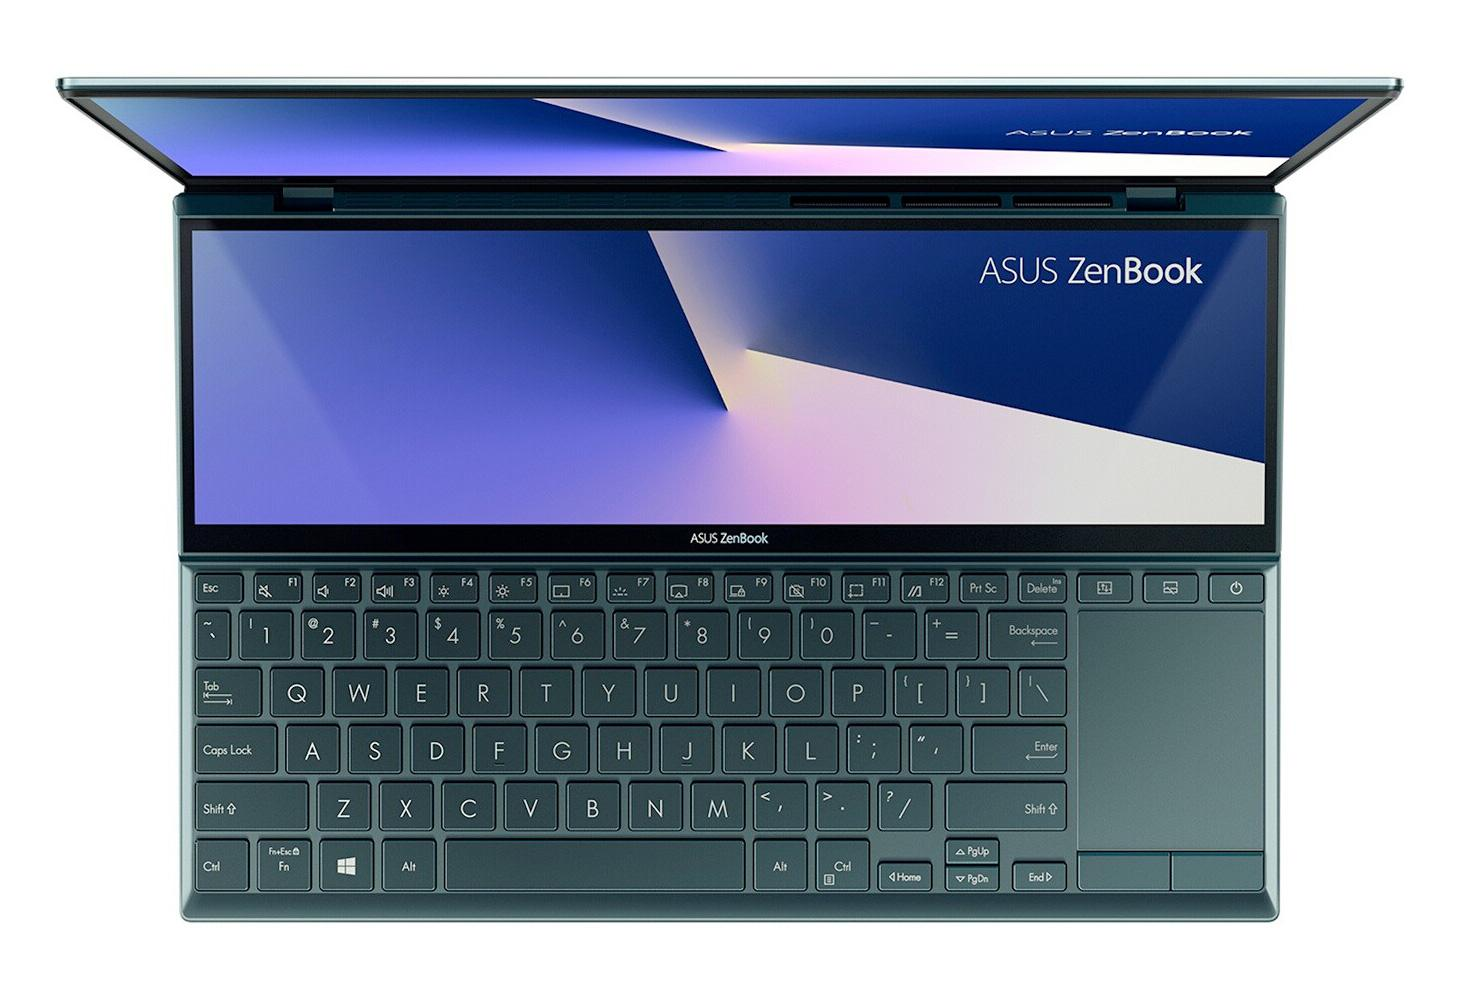 Ordinateur portable Asus ZenBook Duo UX482EG-HY142T Bleu/Noir - Tactile, MX450, ScreenPad Plus - photo 3